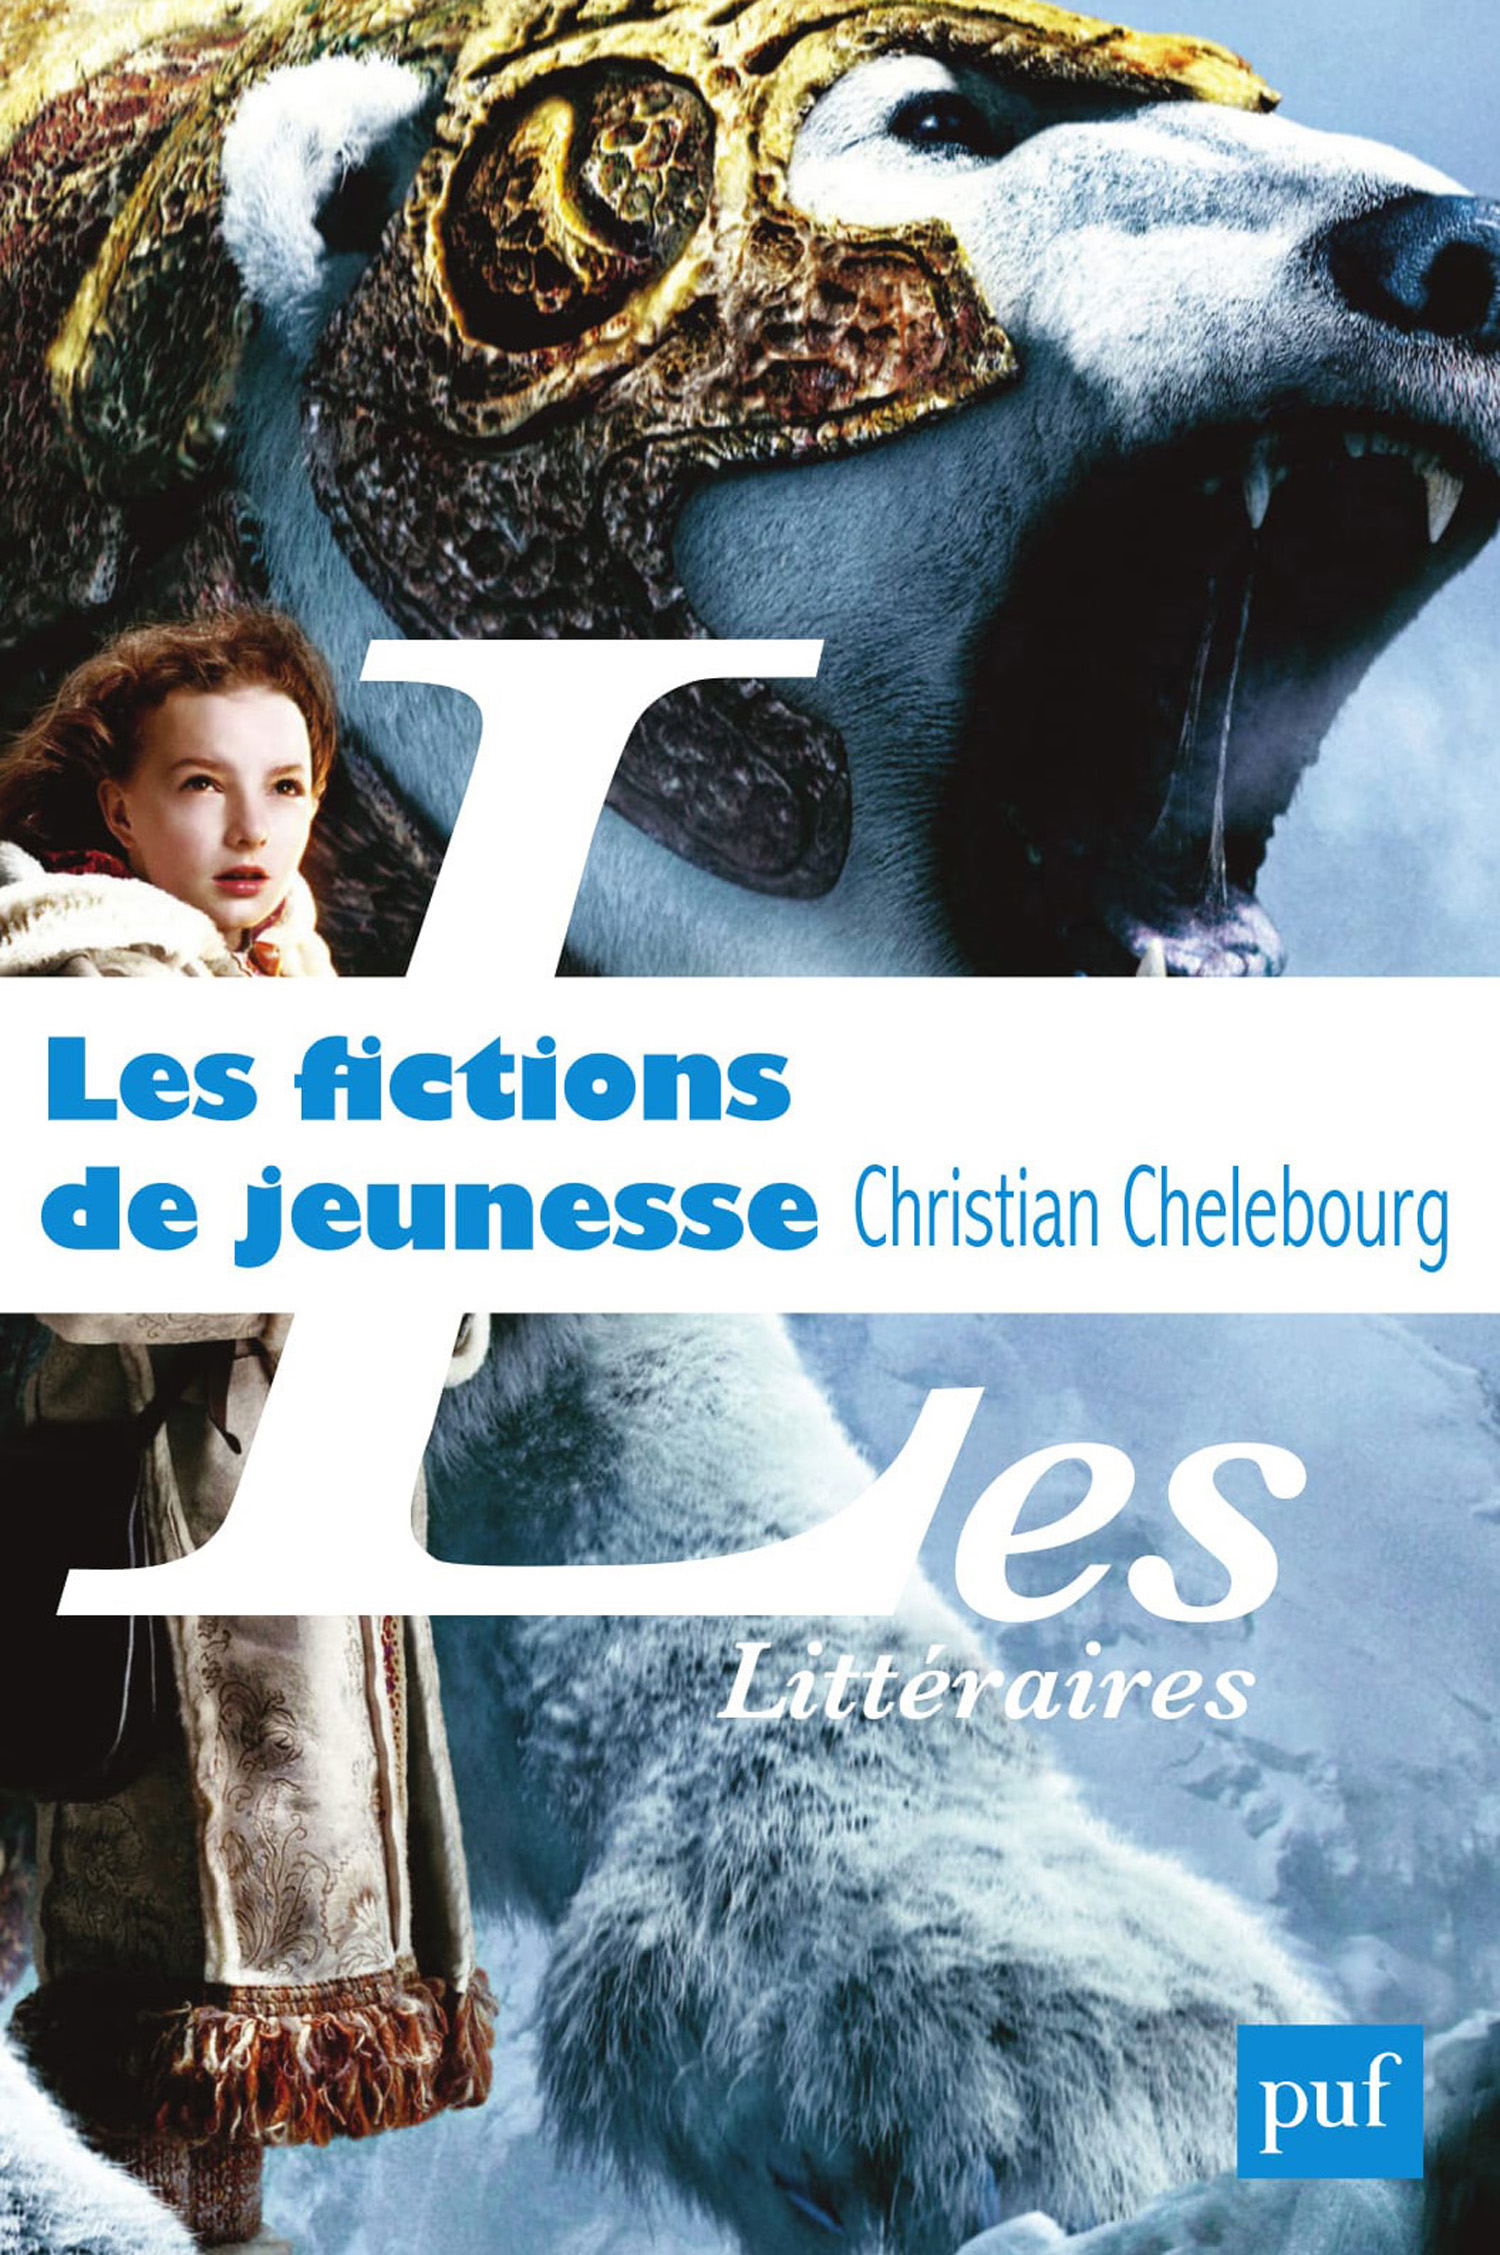 Les fictions de jeunesse De Christian Chelebourg - Presses Universitaires de France